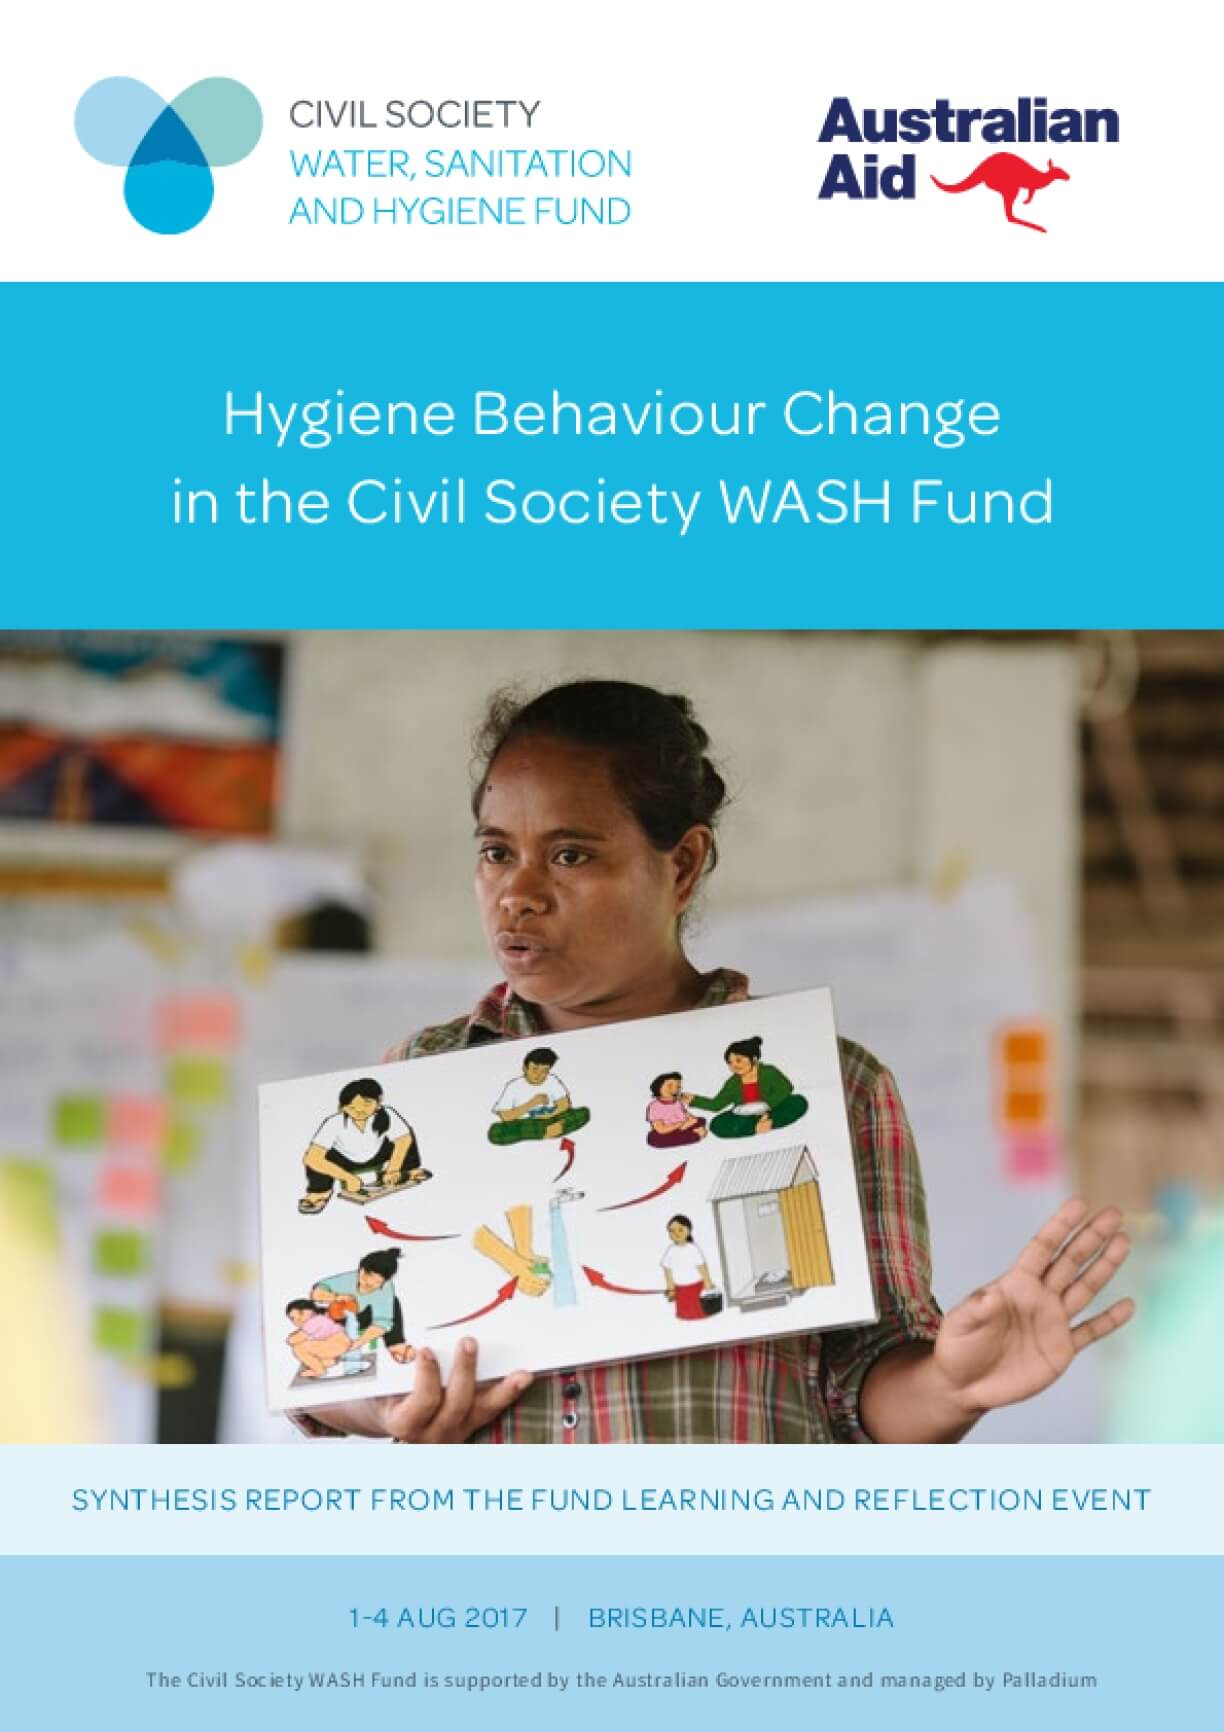 Synthesis Report: Hygiene Behaviour Change in the Civil Society WASH Fund